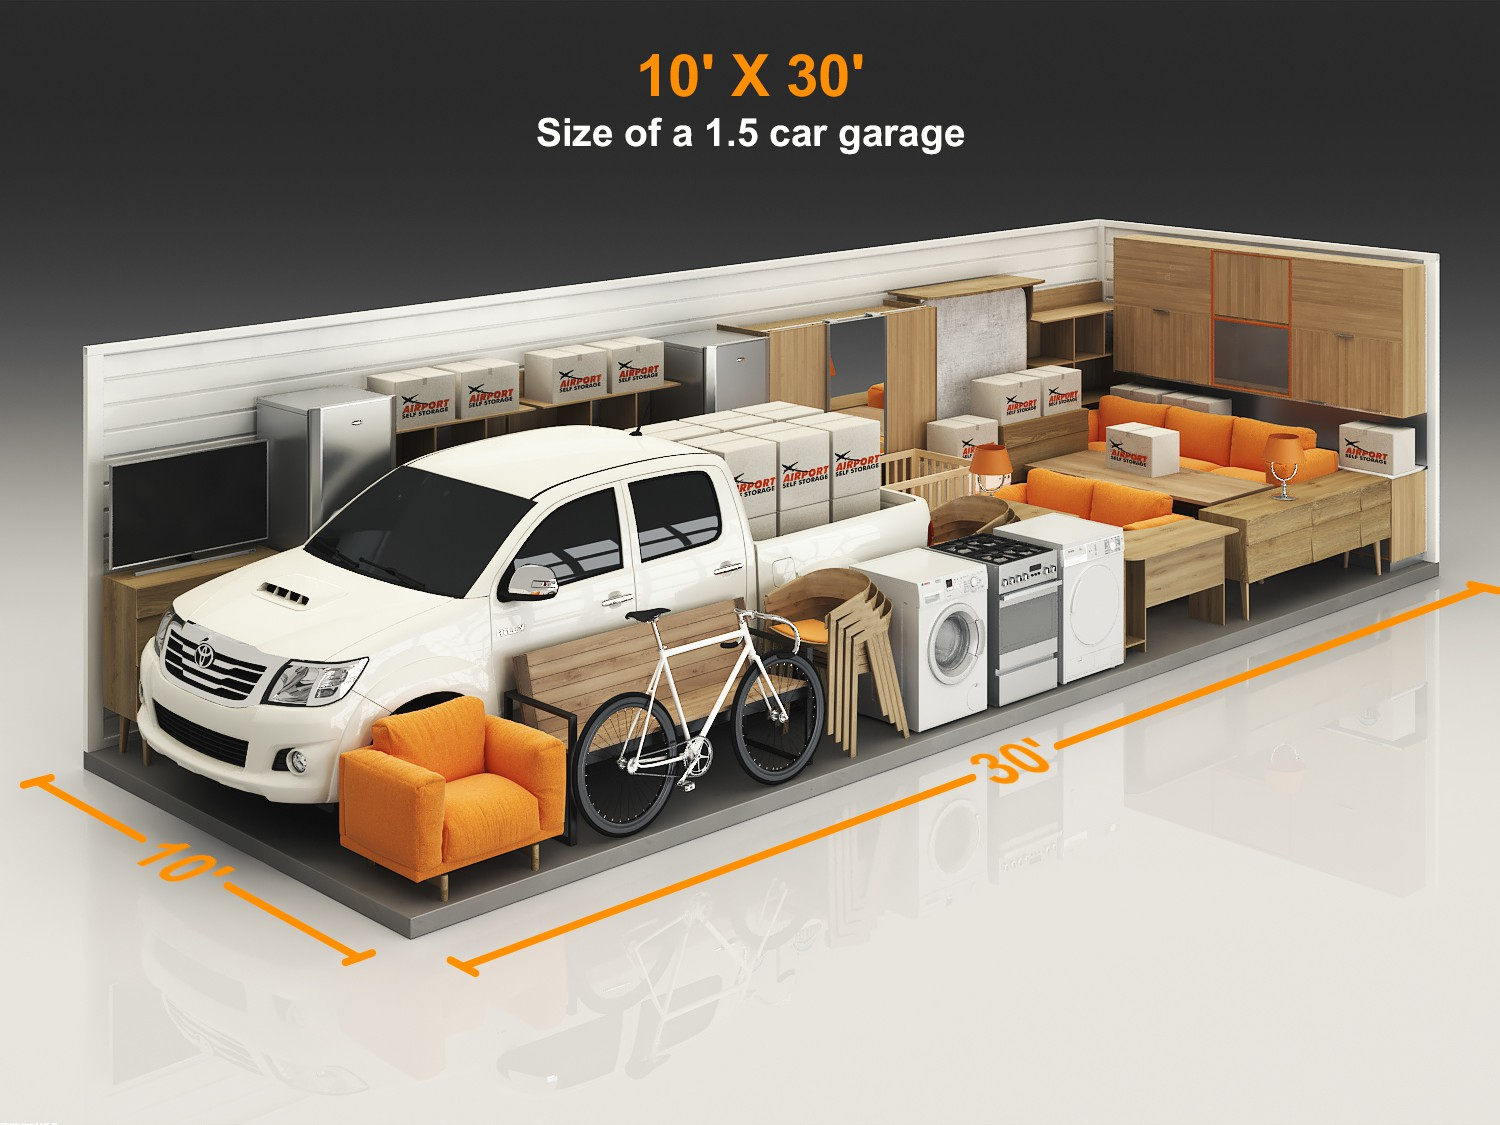 Self Storage 3D layout design for website and print